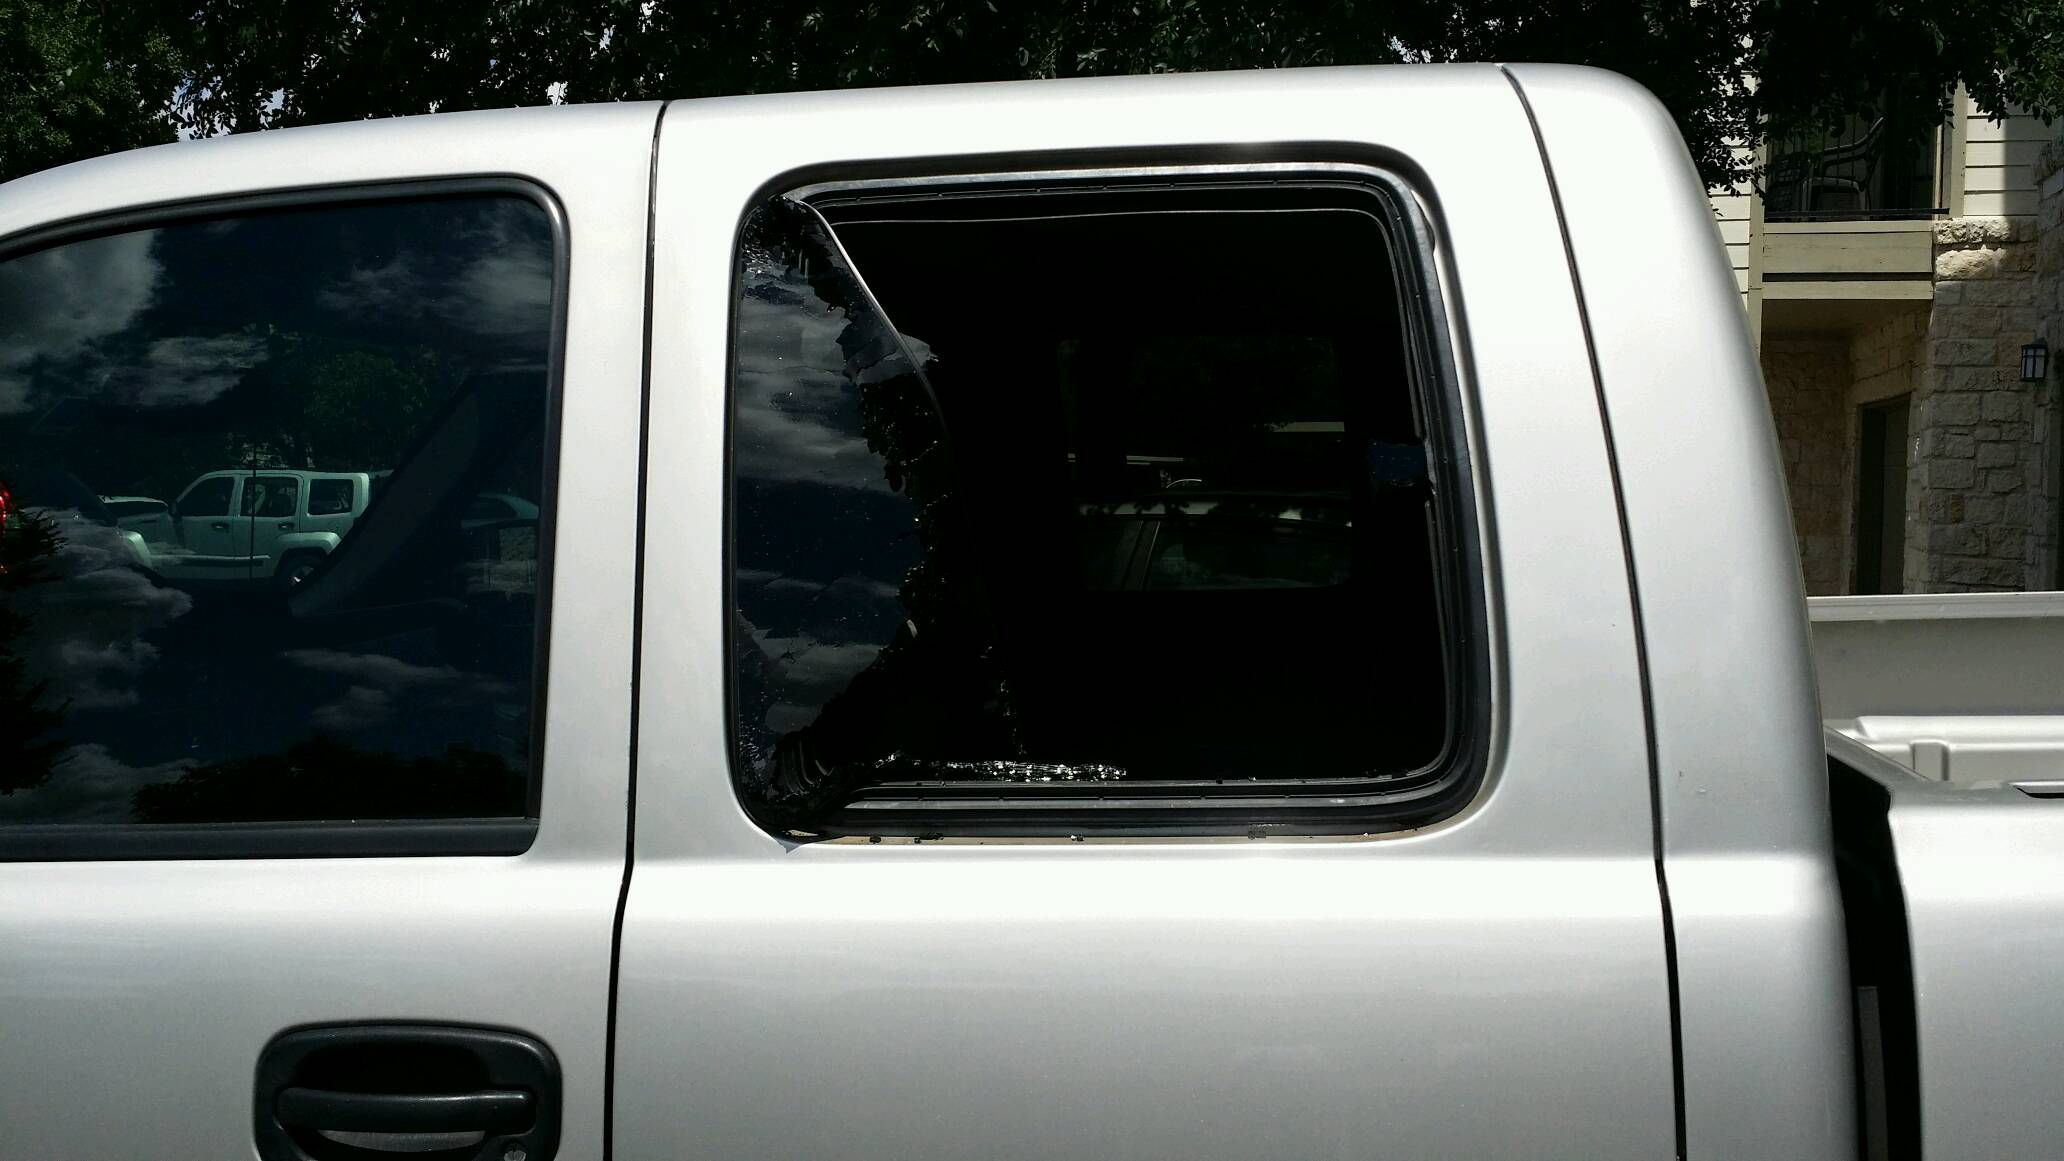 Silverado C1500 2 Door Extended Cab Windshield Replacement Prices Local Auto Glass Quotes